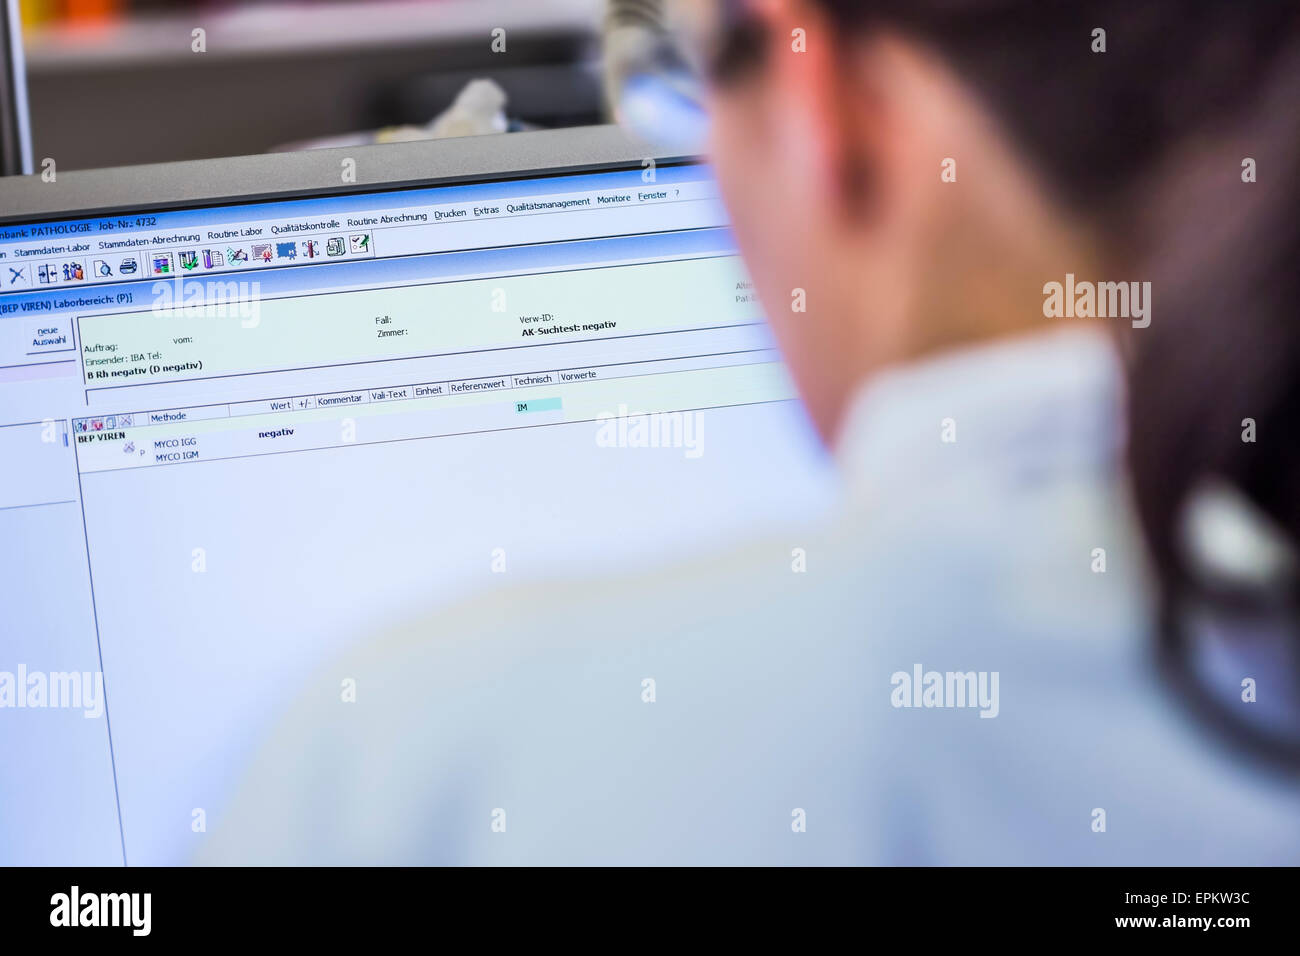 Woman in lab looking at computer monitor - Stock Image